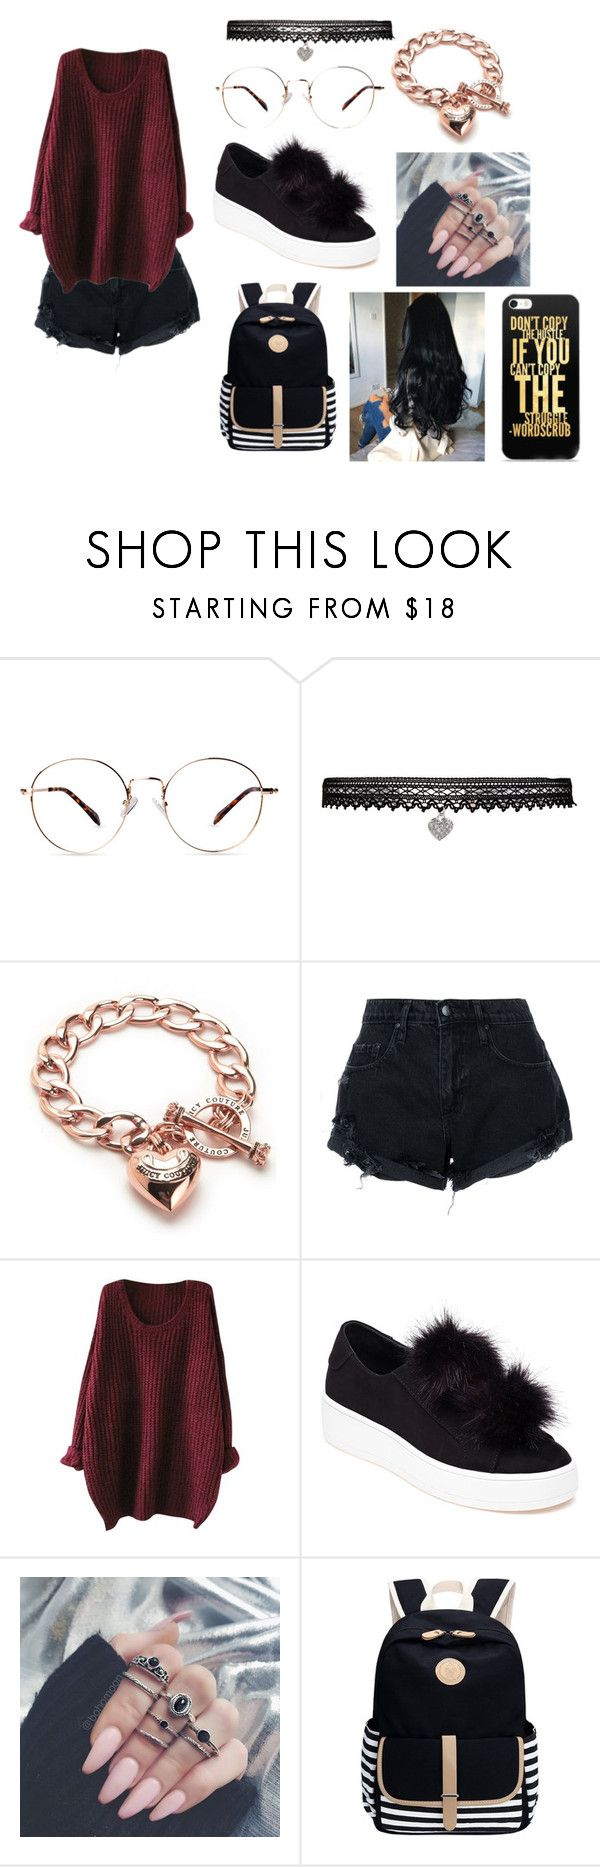 """""""Sem título #1001"""" by samaralucia on Polyvore featuring moda, Betsey Johnson, Juicy Couture, Nobody Denim e Steve Madden"""